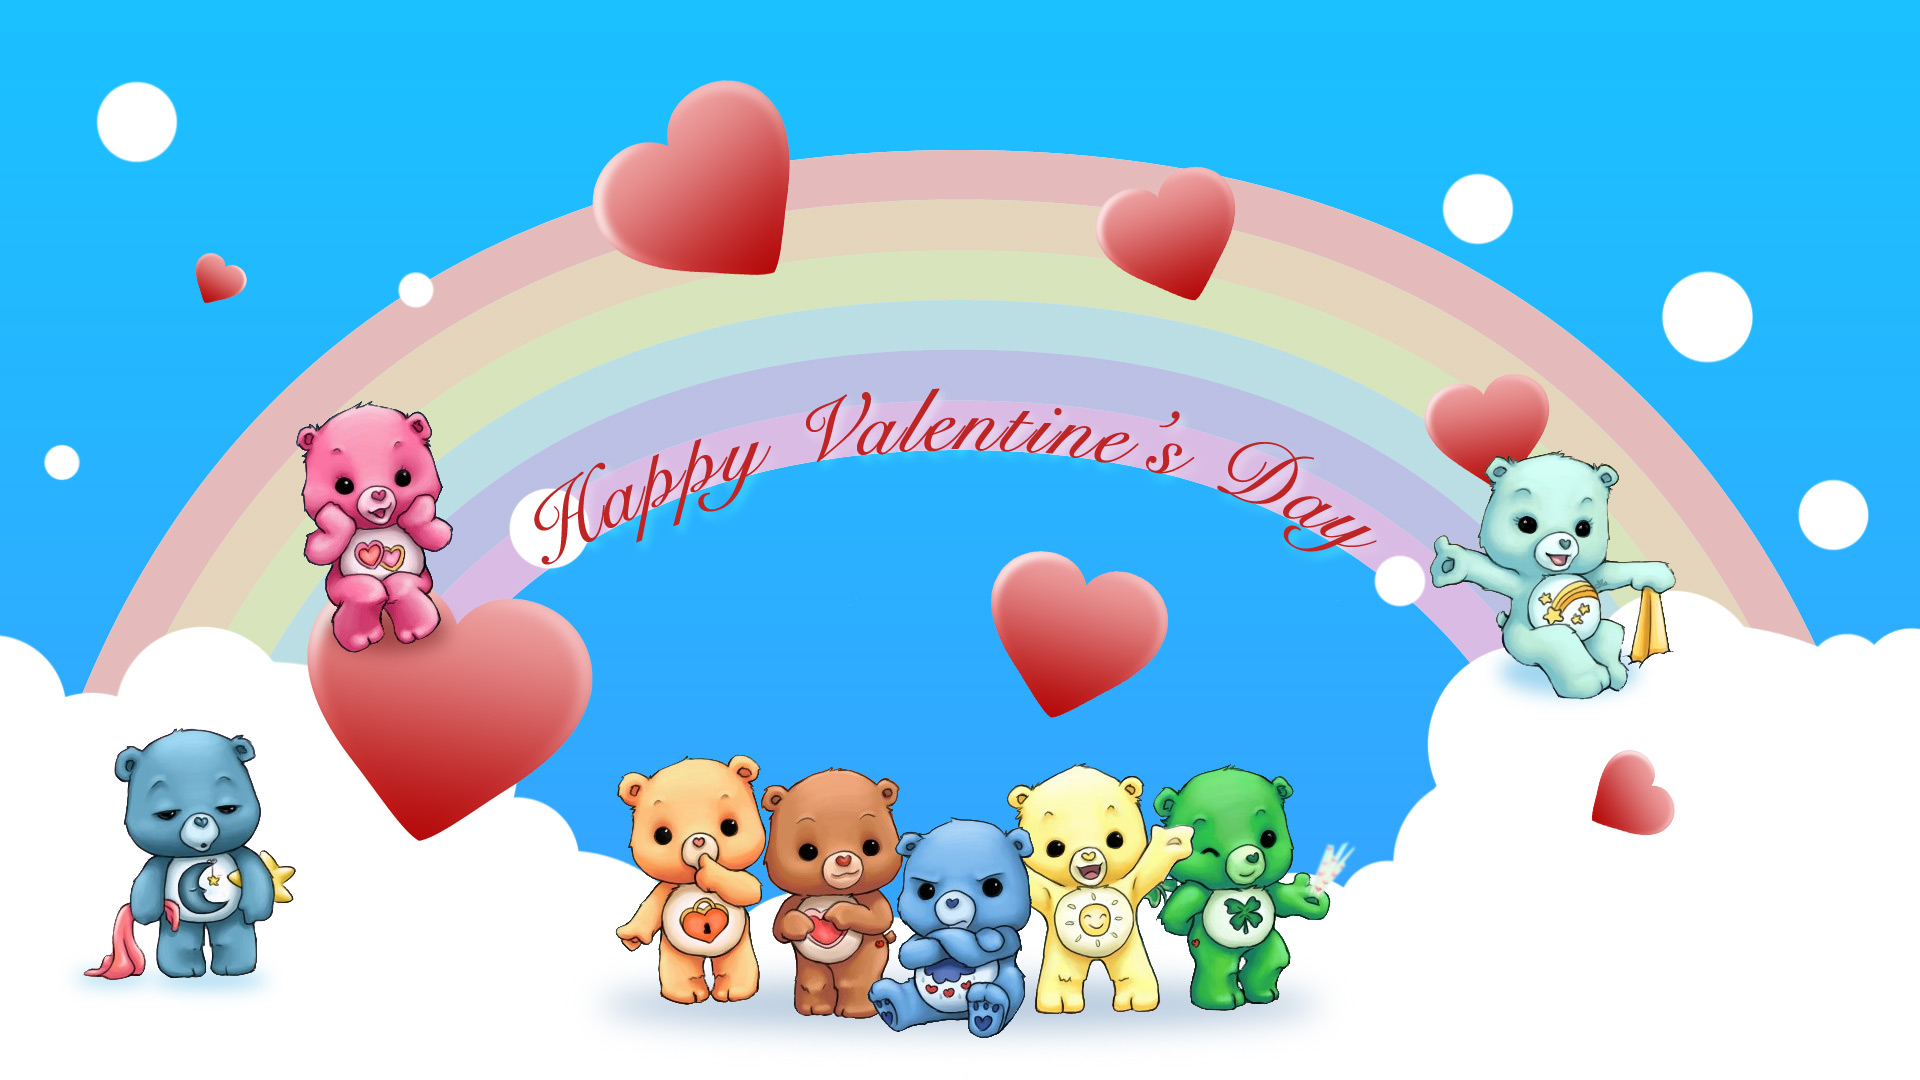 Cute Greeting Happy Valentine Day Wallpaper Desktop Wallpaper with 1920x1080